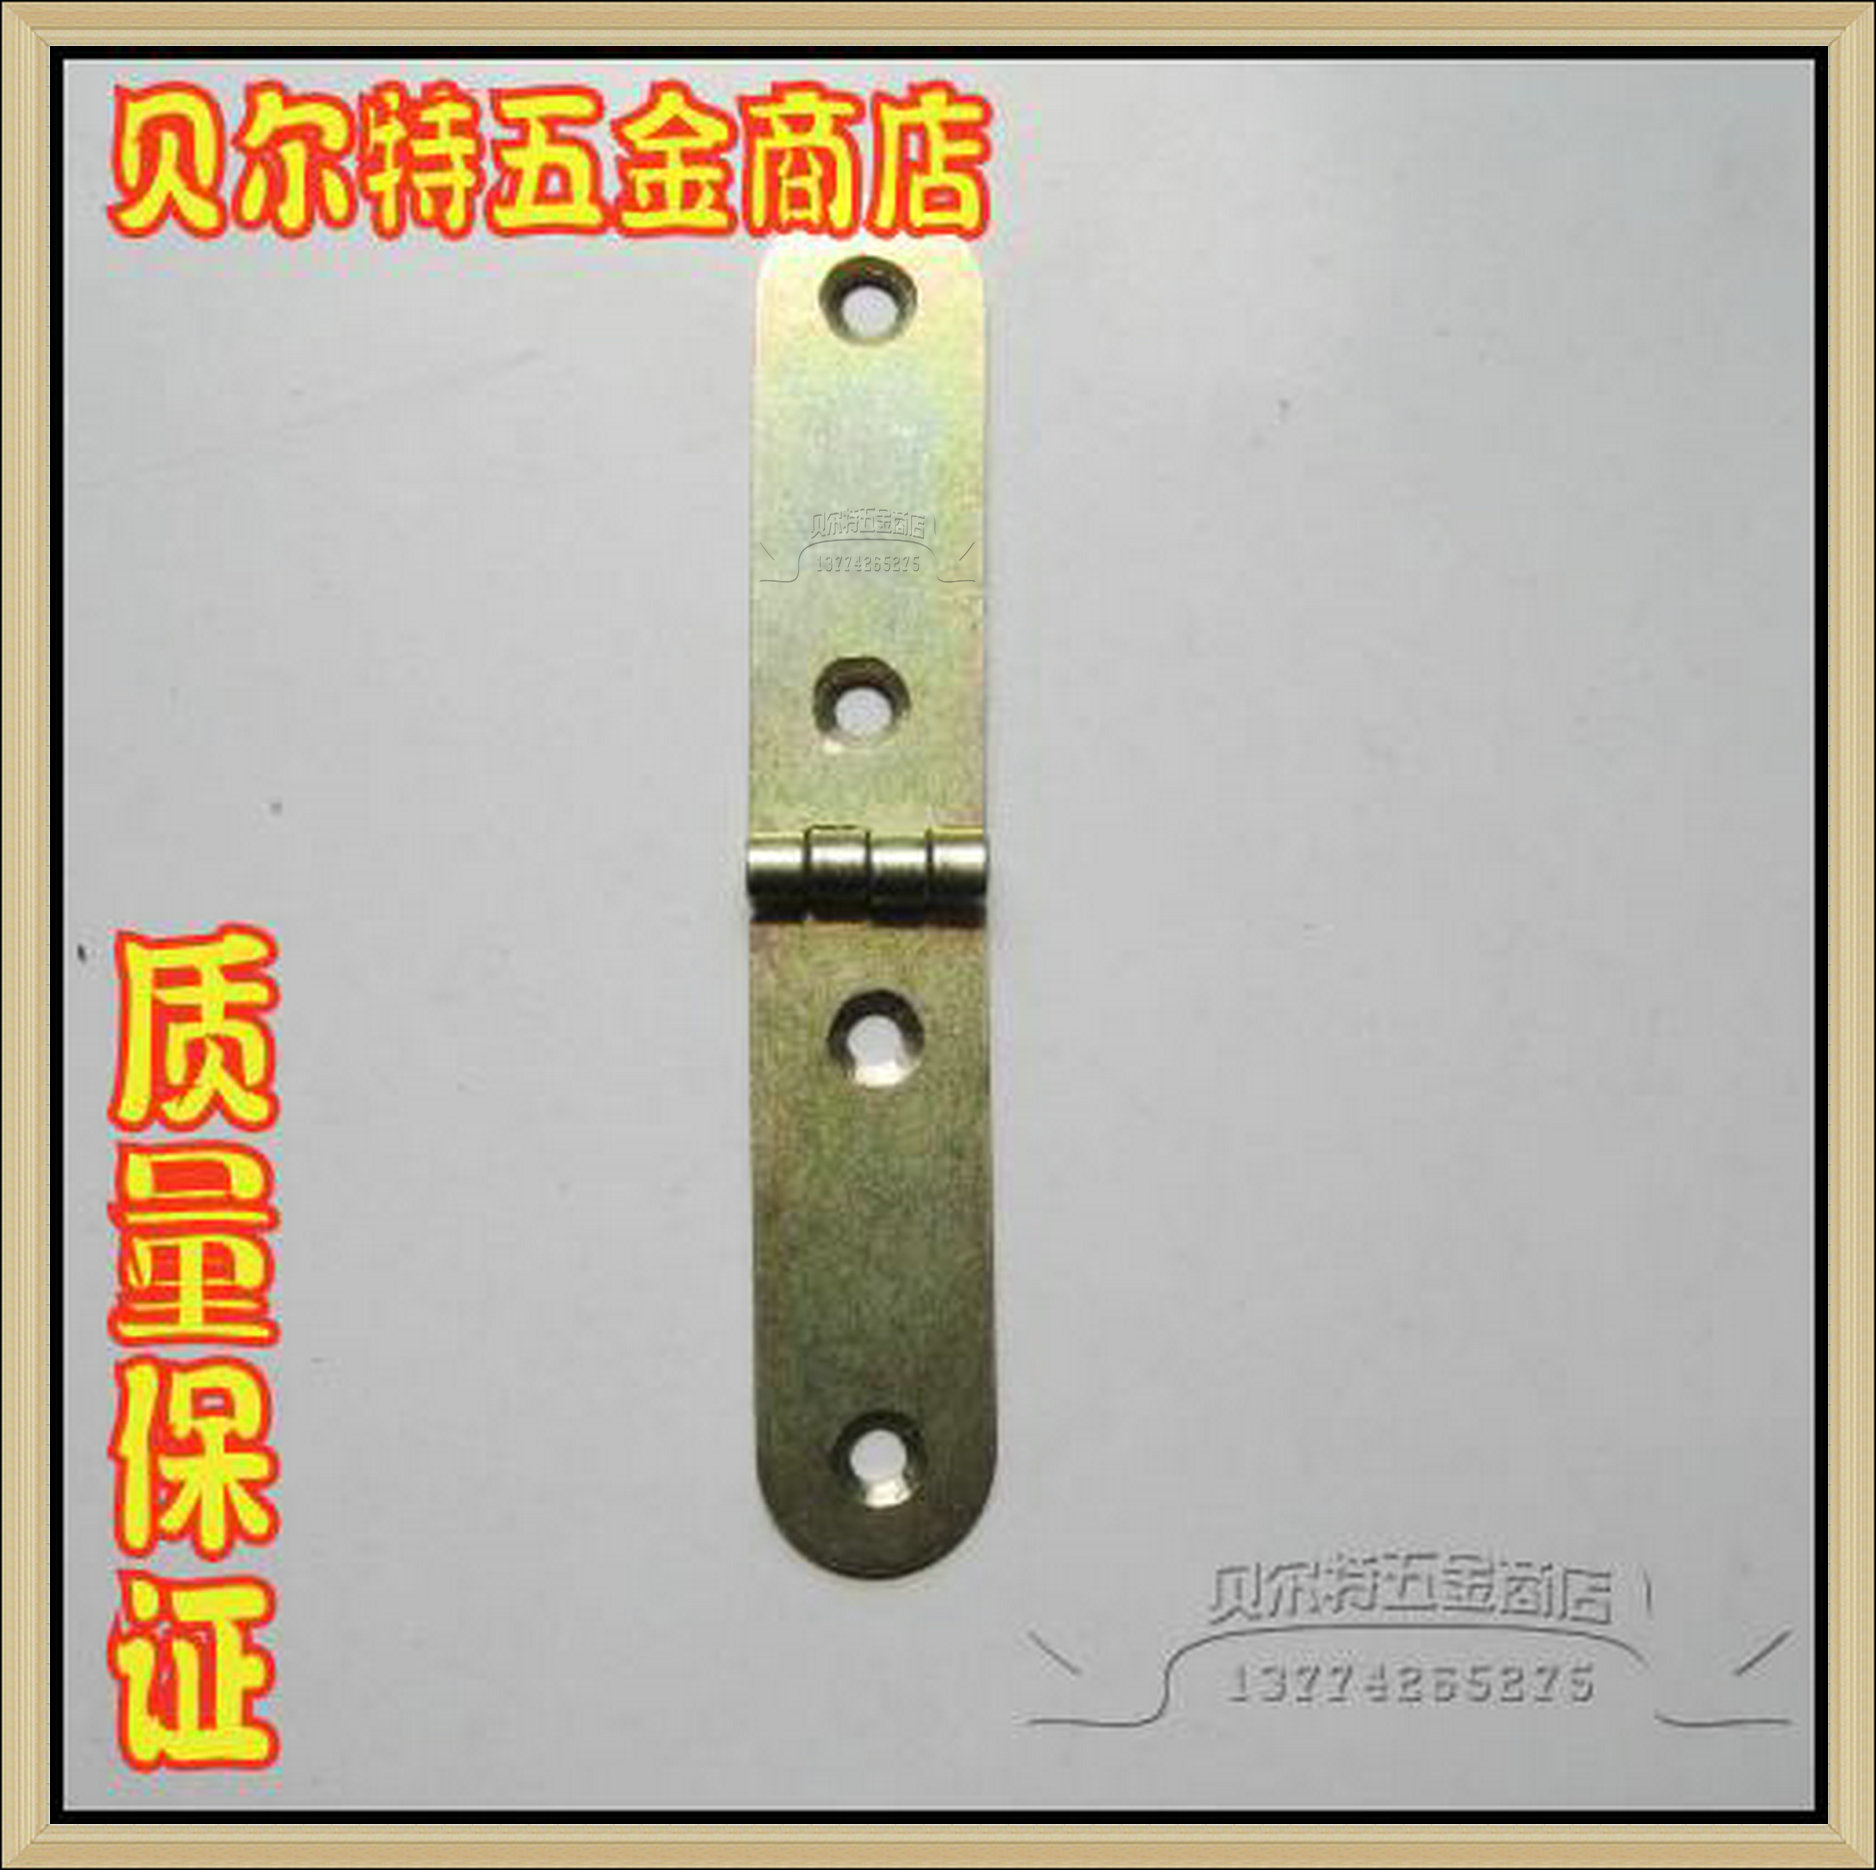 Iron plated color zinc plating, turnover plate hinge, turnover plate, small hinge, folding hinge, four hole iron hinge, 121MM*21M